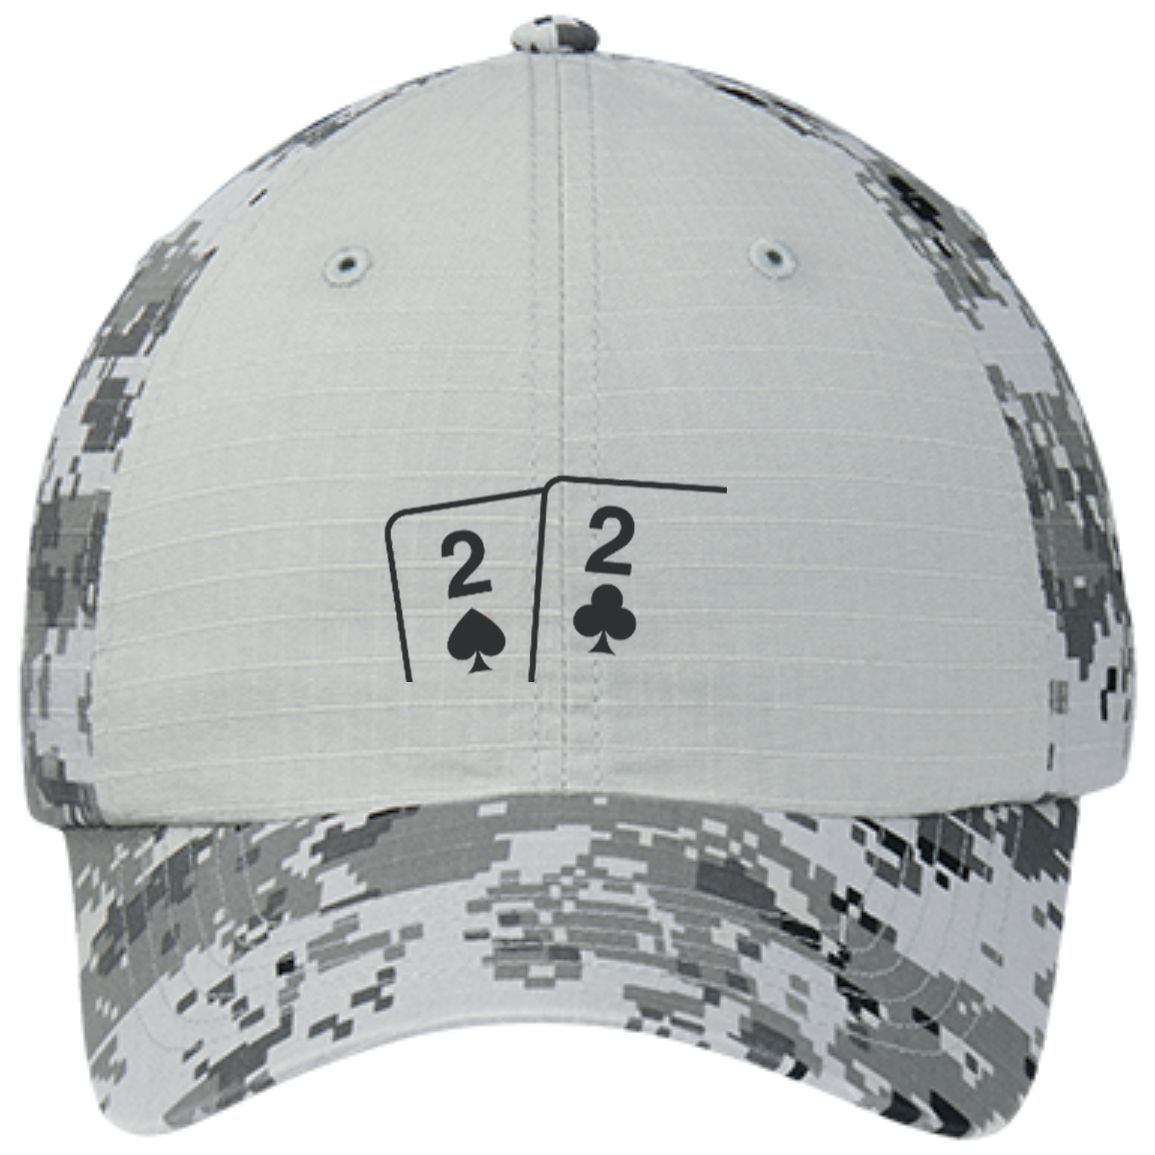 2f02a277 ... spain digital camouflage hat 2s 2c on front 39e0c f1290